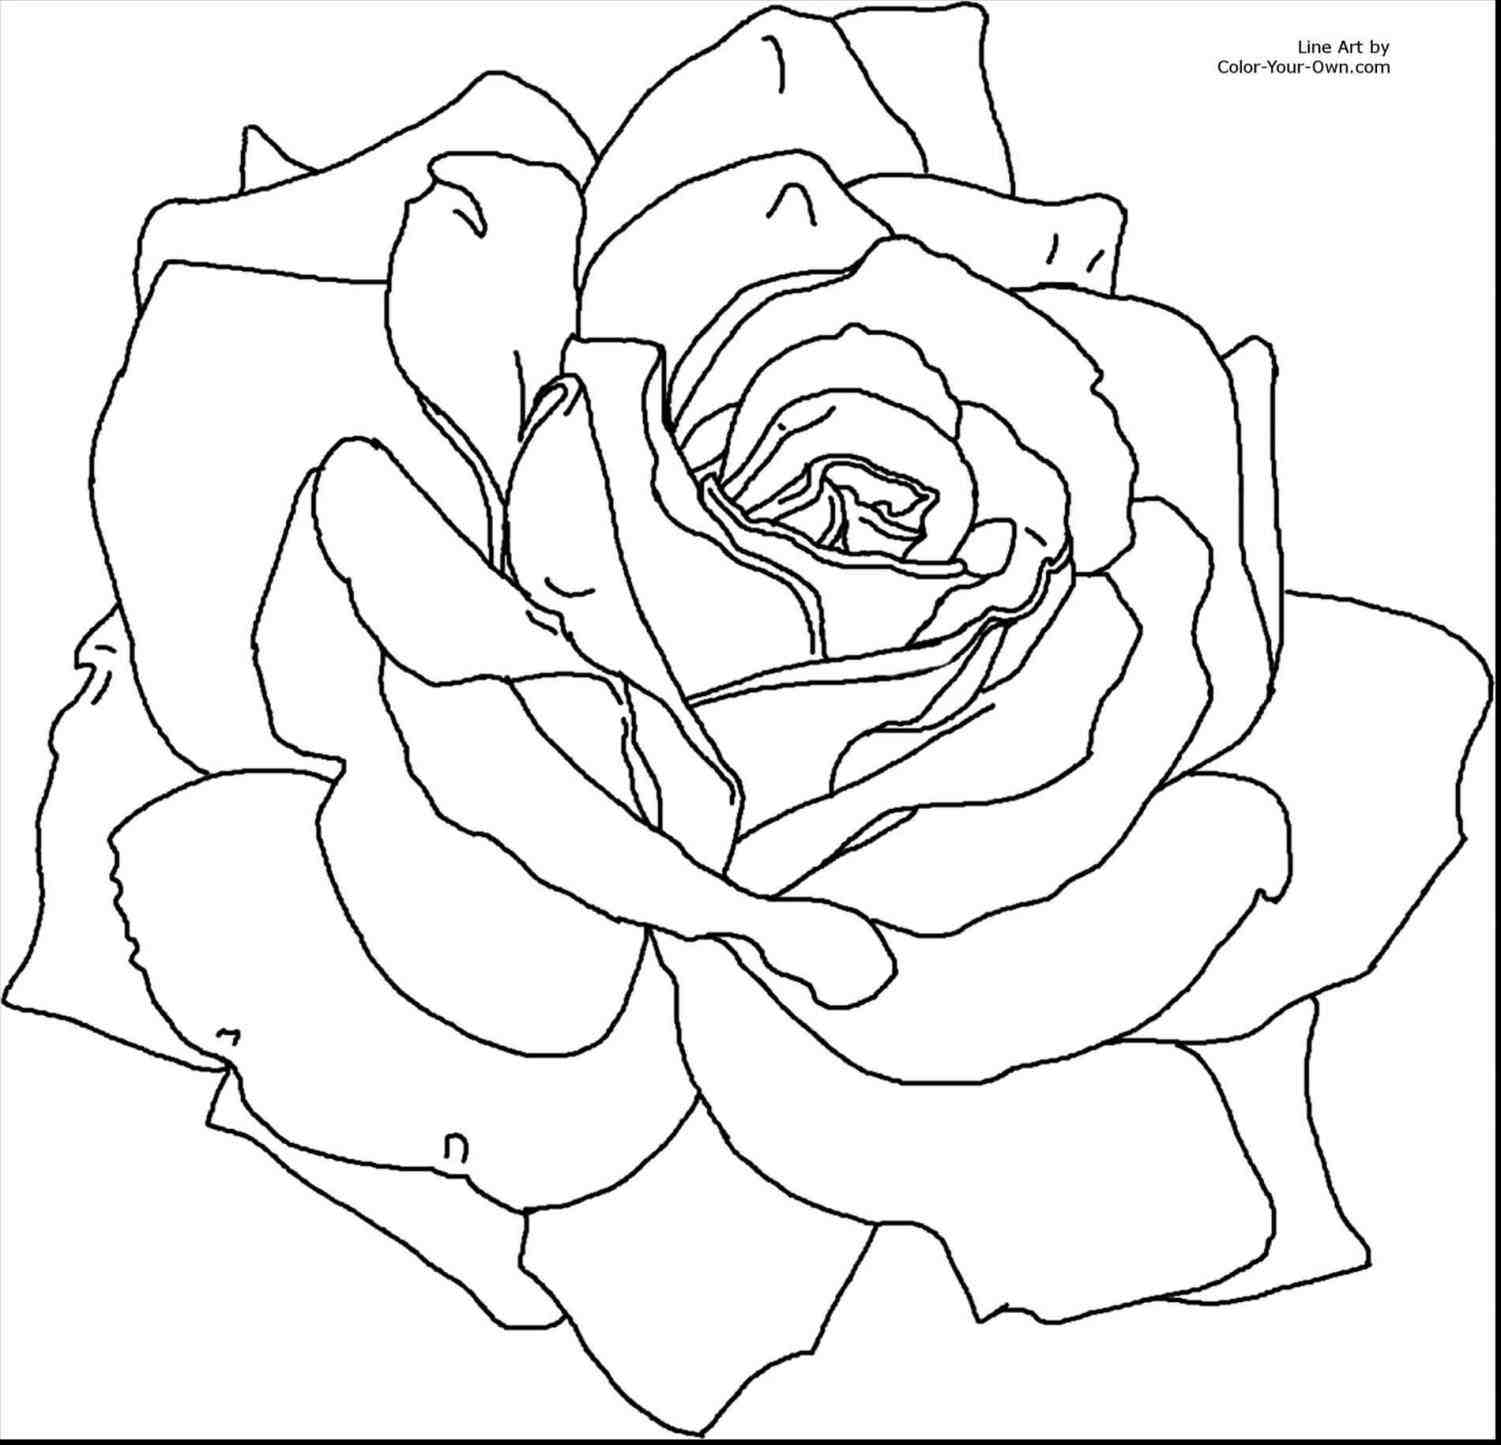 1501x1445 Old Fashioned Flower Pencil And In Color Drawn Rose Bush Drawing